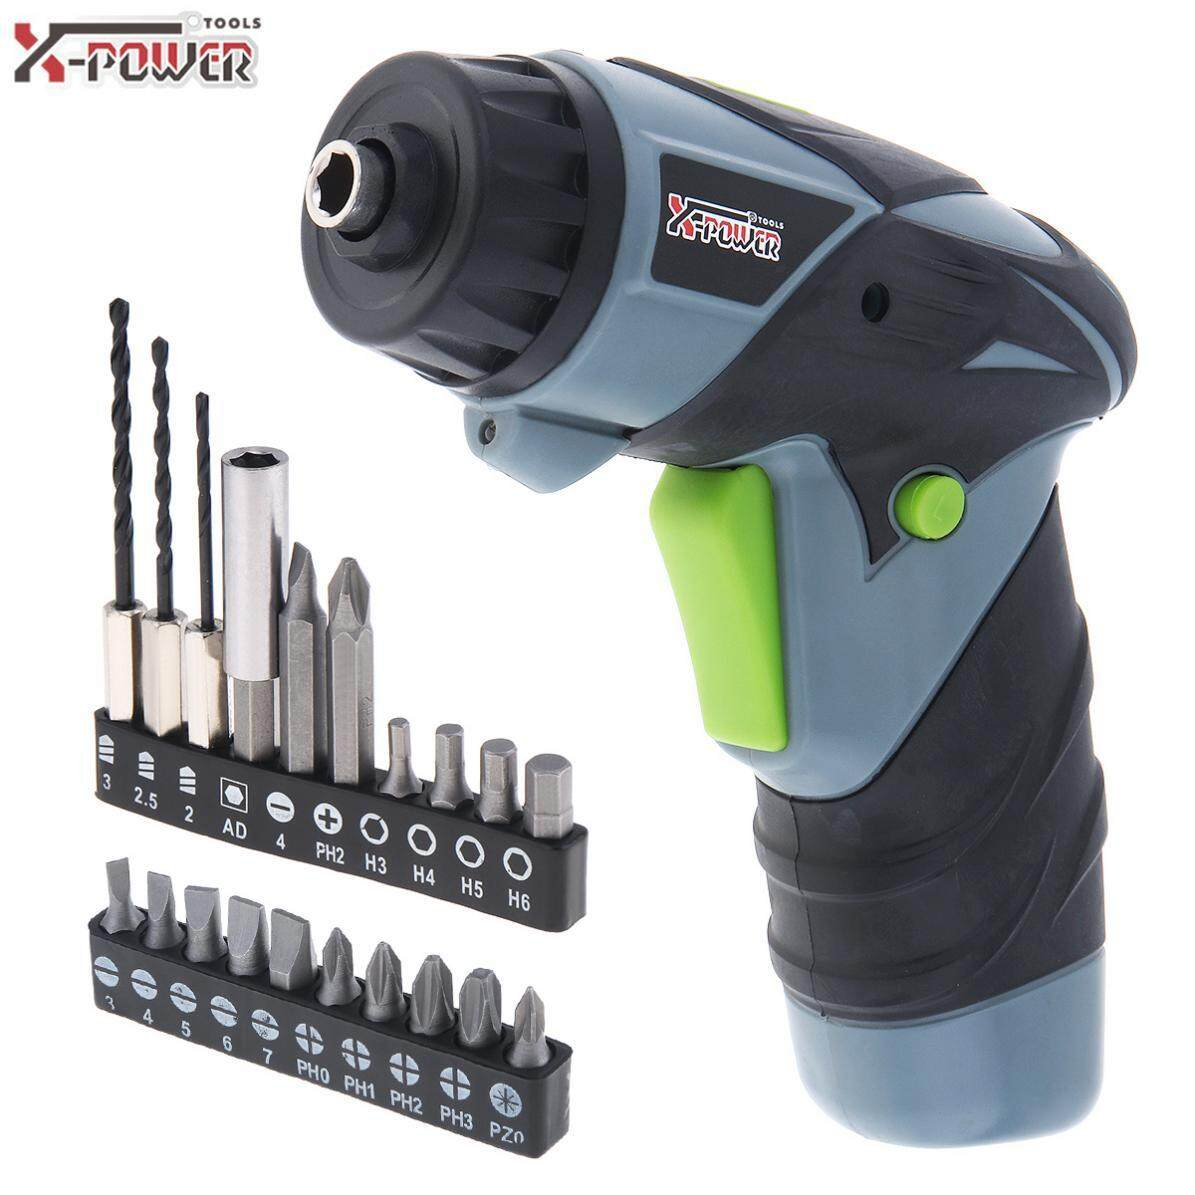 Mini AC 220V Handle Rechargeable Electric Screw Driver 3.6V with LED Lighting and Bidirectional Switch for Household Maintenance